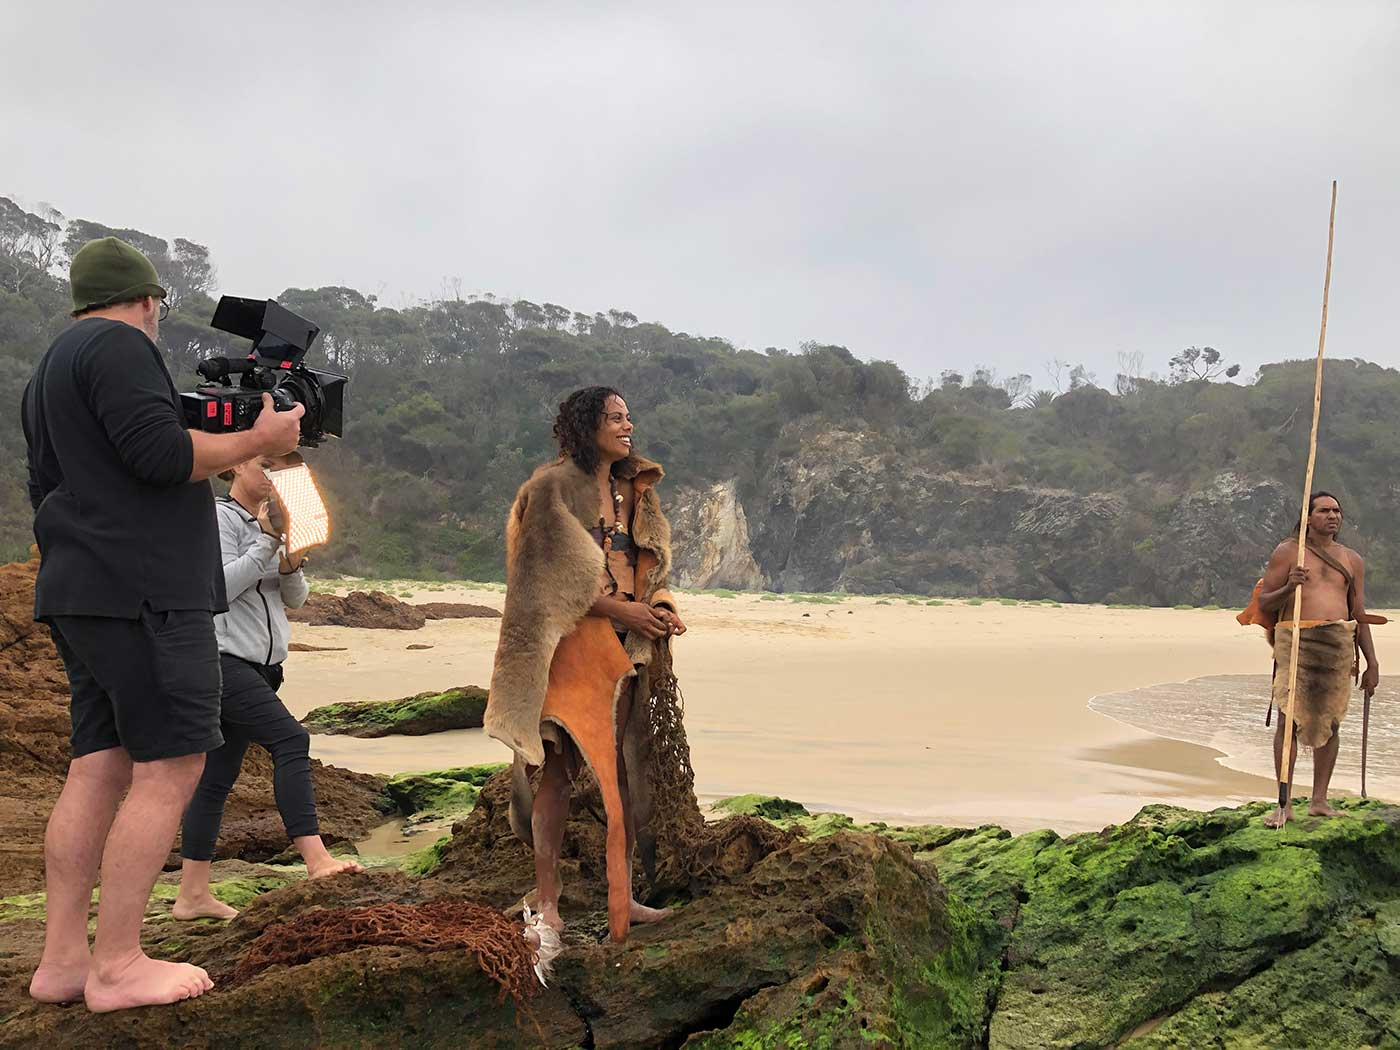 A female actor draped in animal skins stands on a beach with a film crew around her.